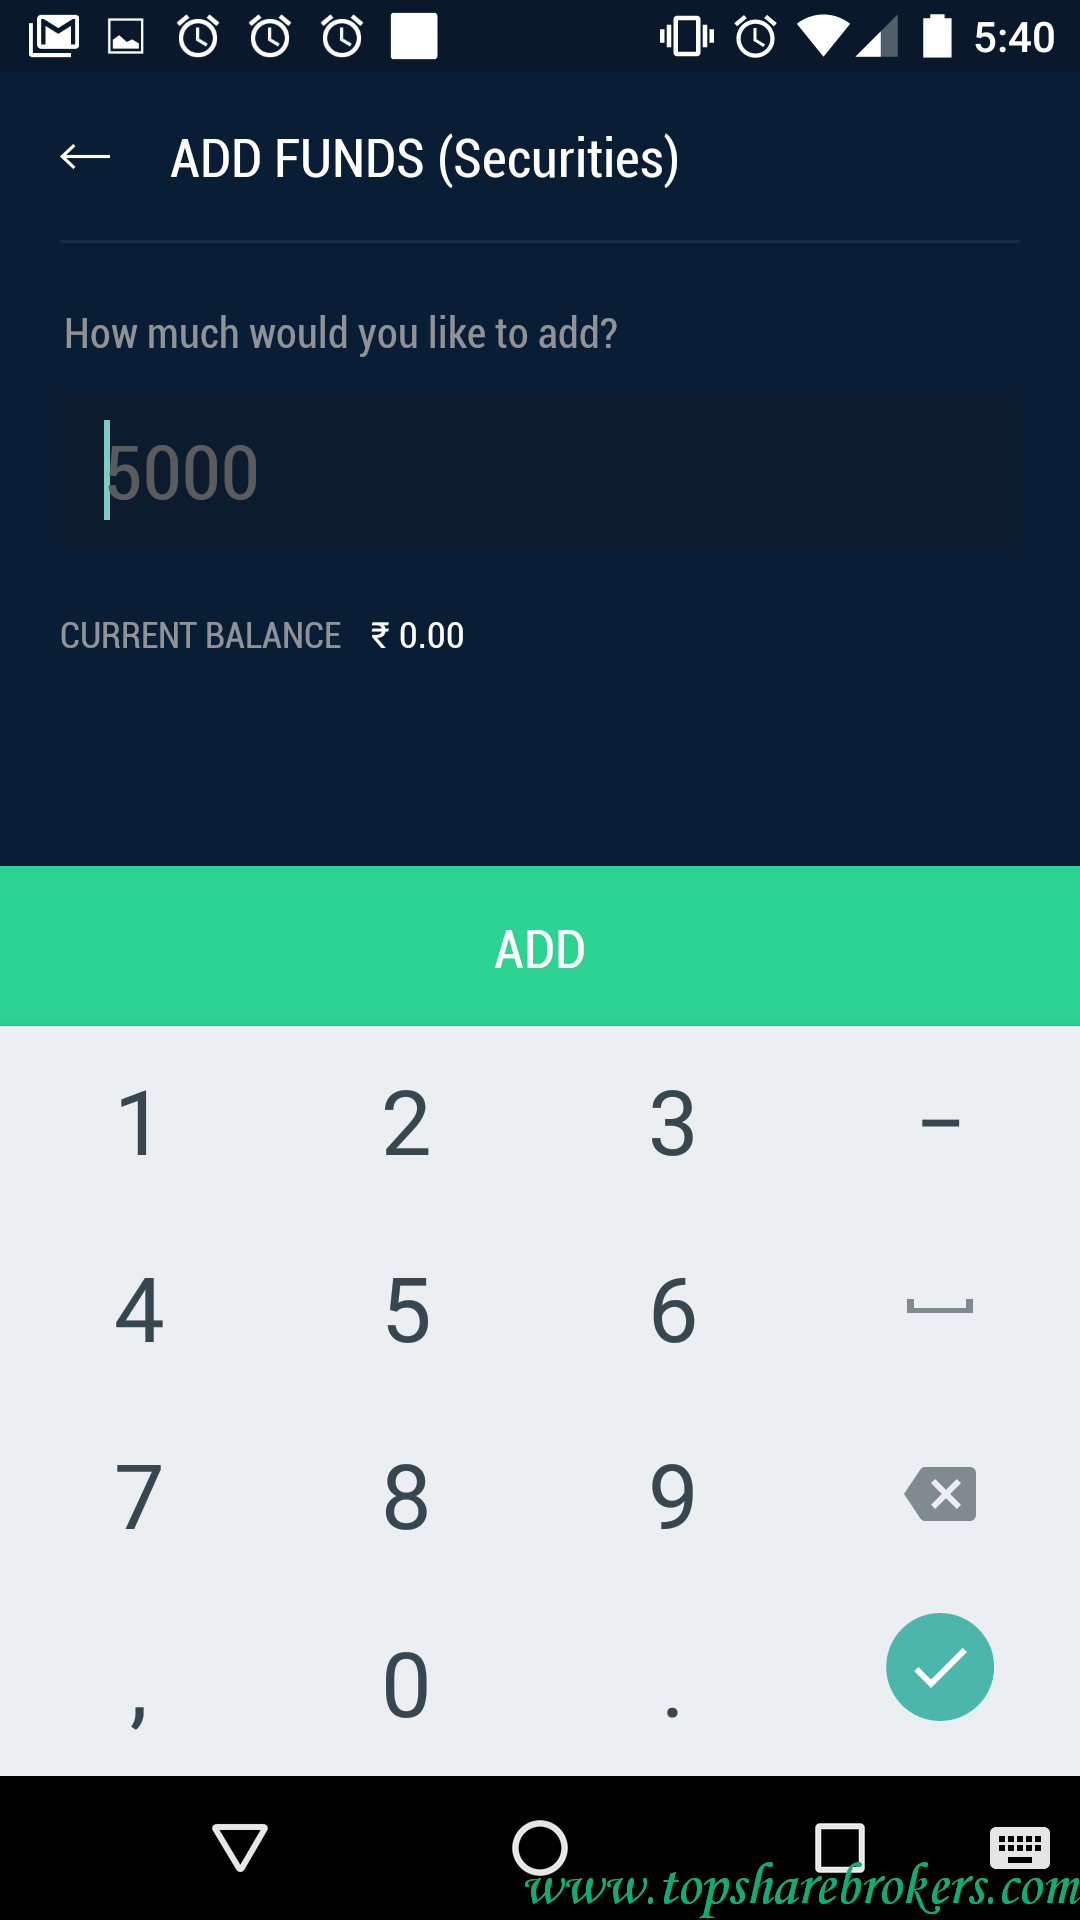 upstox-pro-rksv-mobile-app-fund-transfer-pay-in